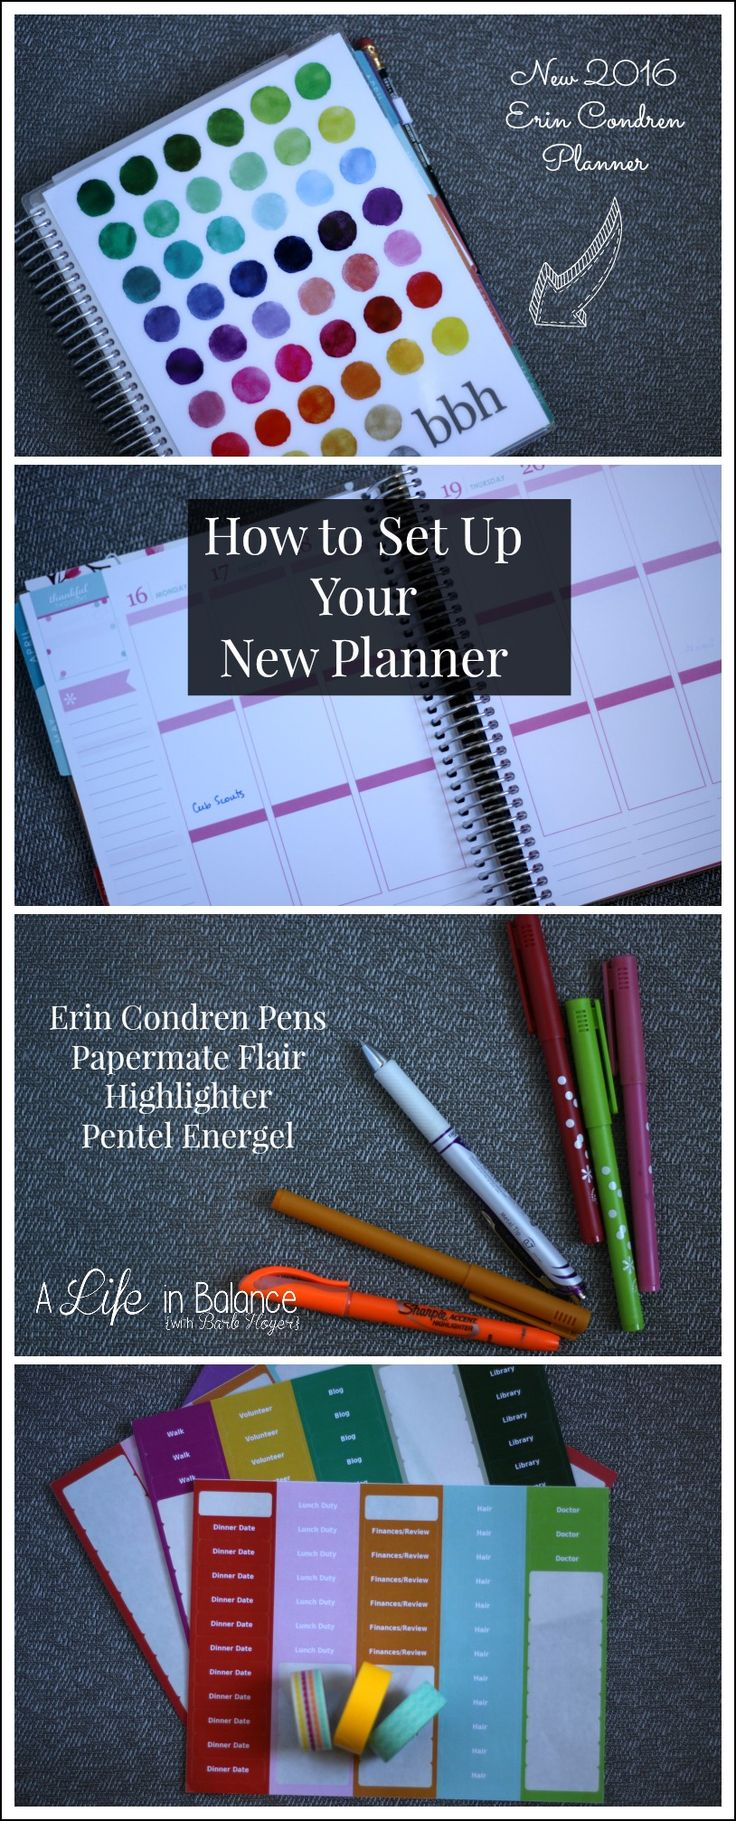 4 Simple Steps to Setting Up Your New Planner -- Getting started with your planner requires only a few supplies and patience with tweaking your planning system. You'll grow to love your Erin Condren planner!